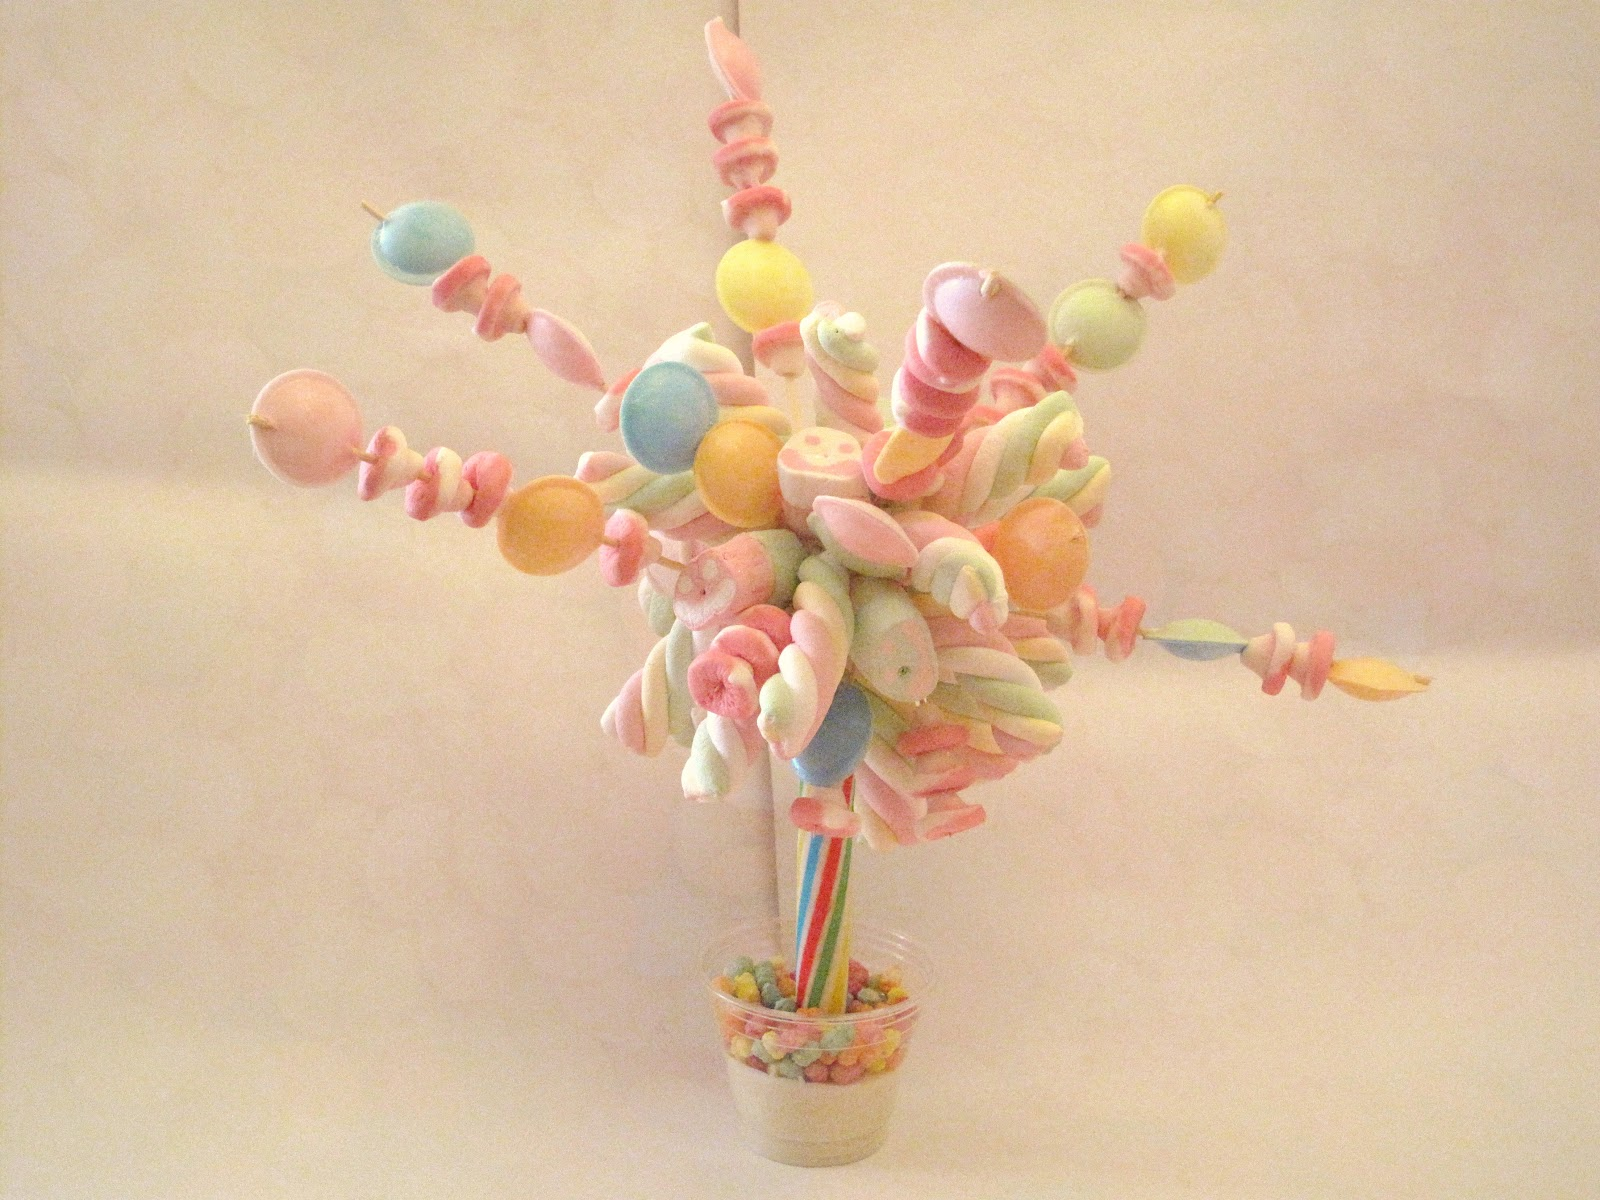 Candy Cupcake: Candy Trees From Candy Cupcake